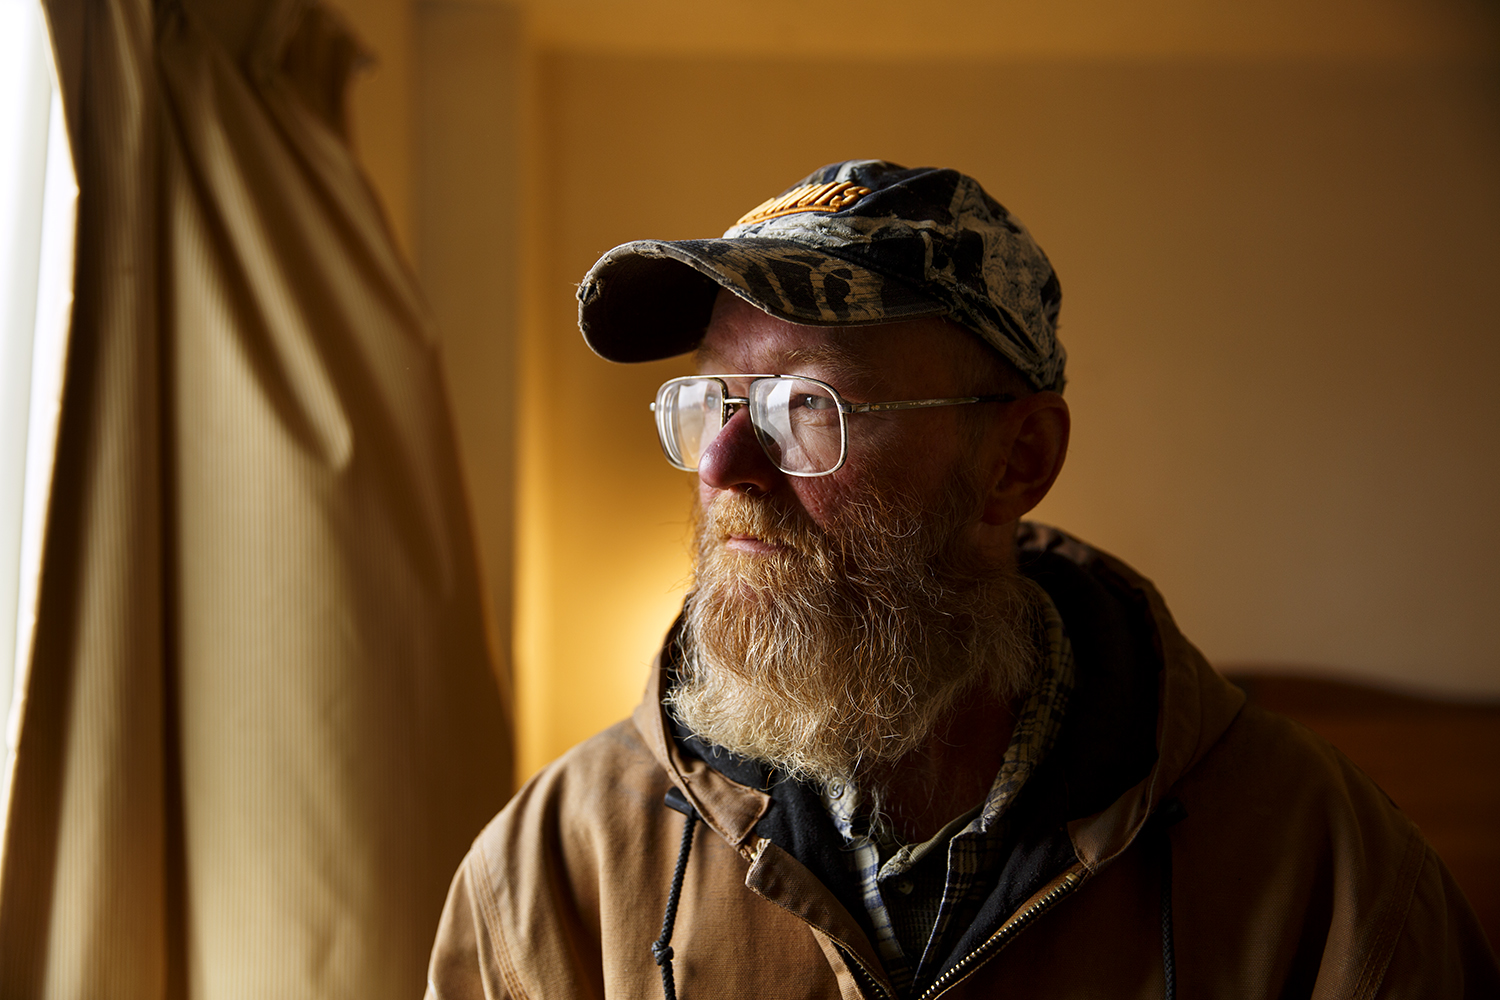 John Hanson moved in to the Bel-Aire in June. A military veteran and retired truck driver, he has been working as a maintenance man at the motel.